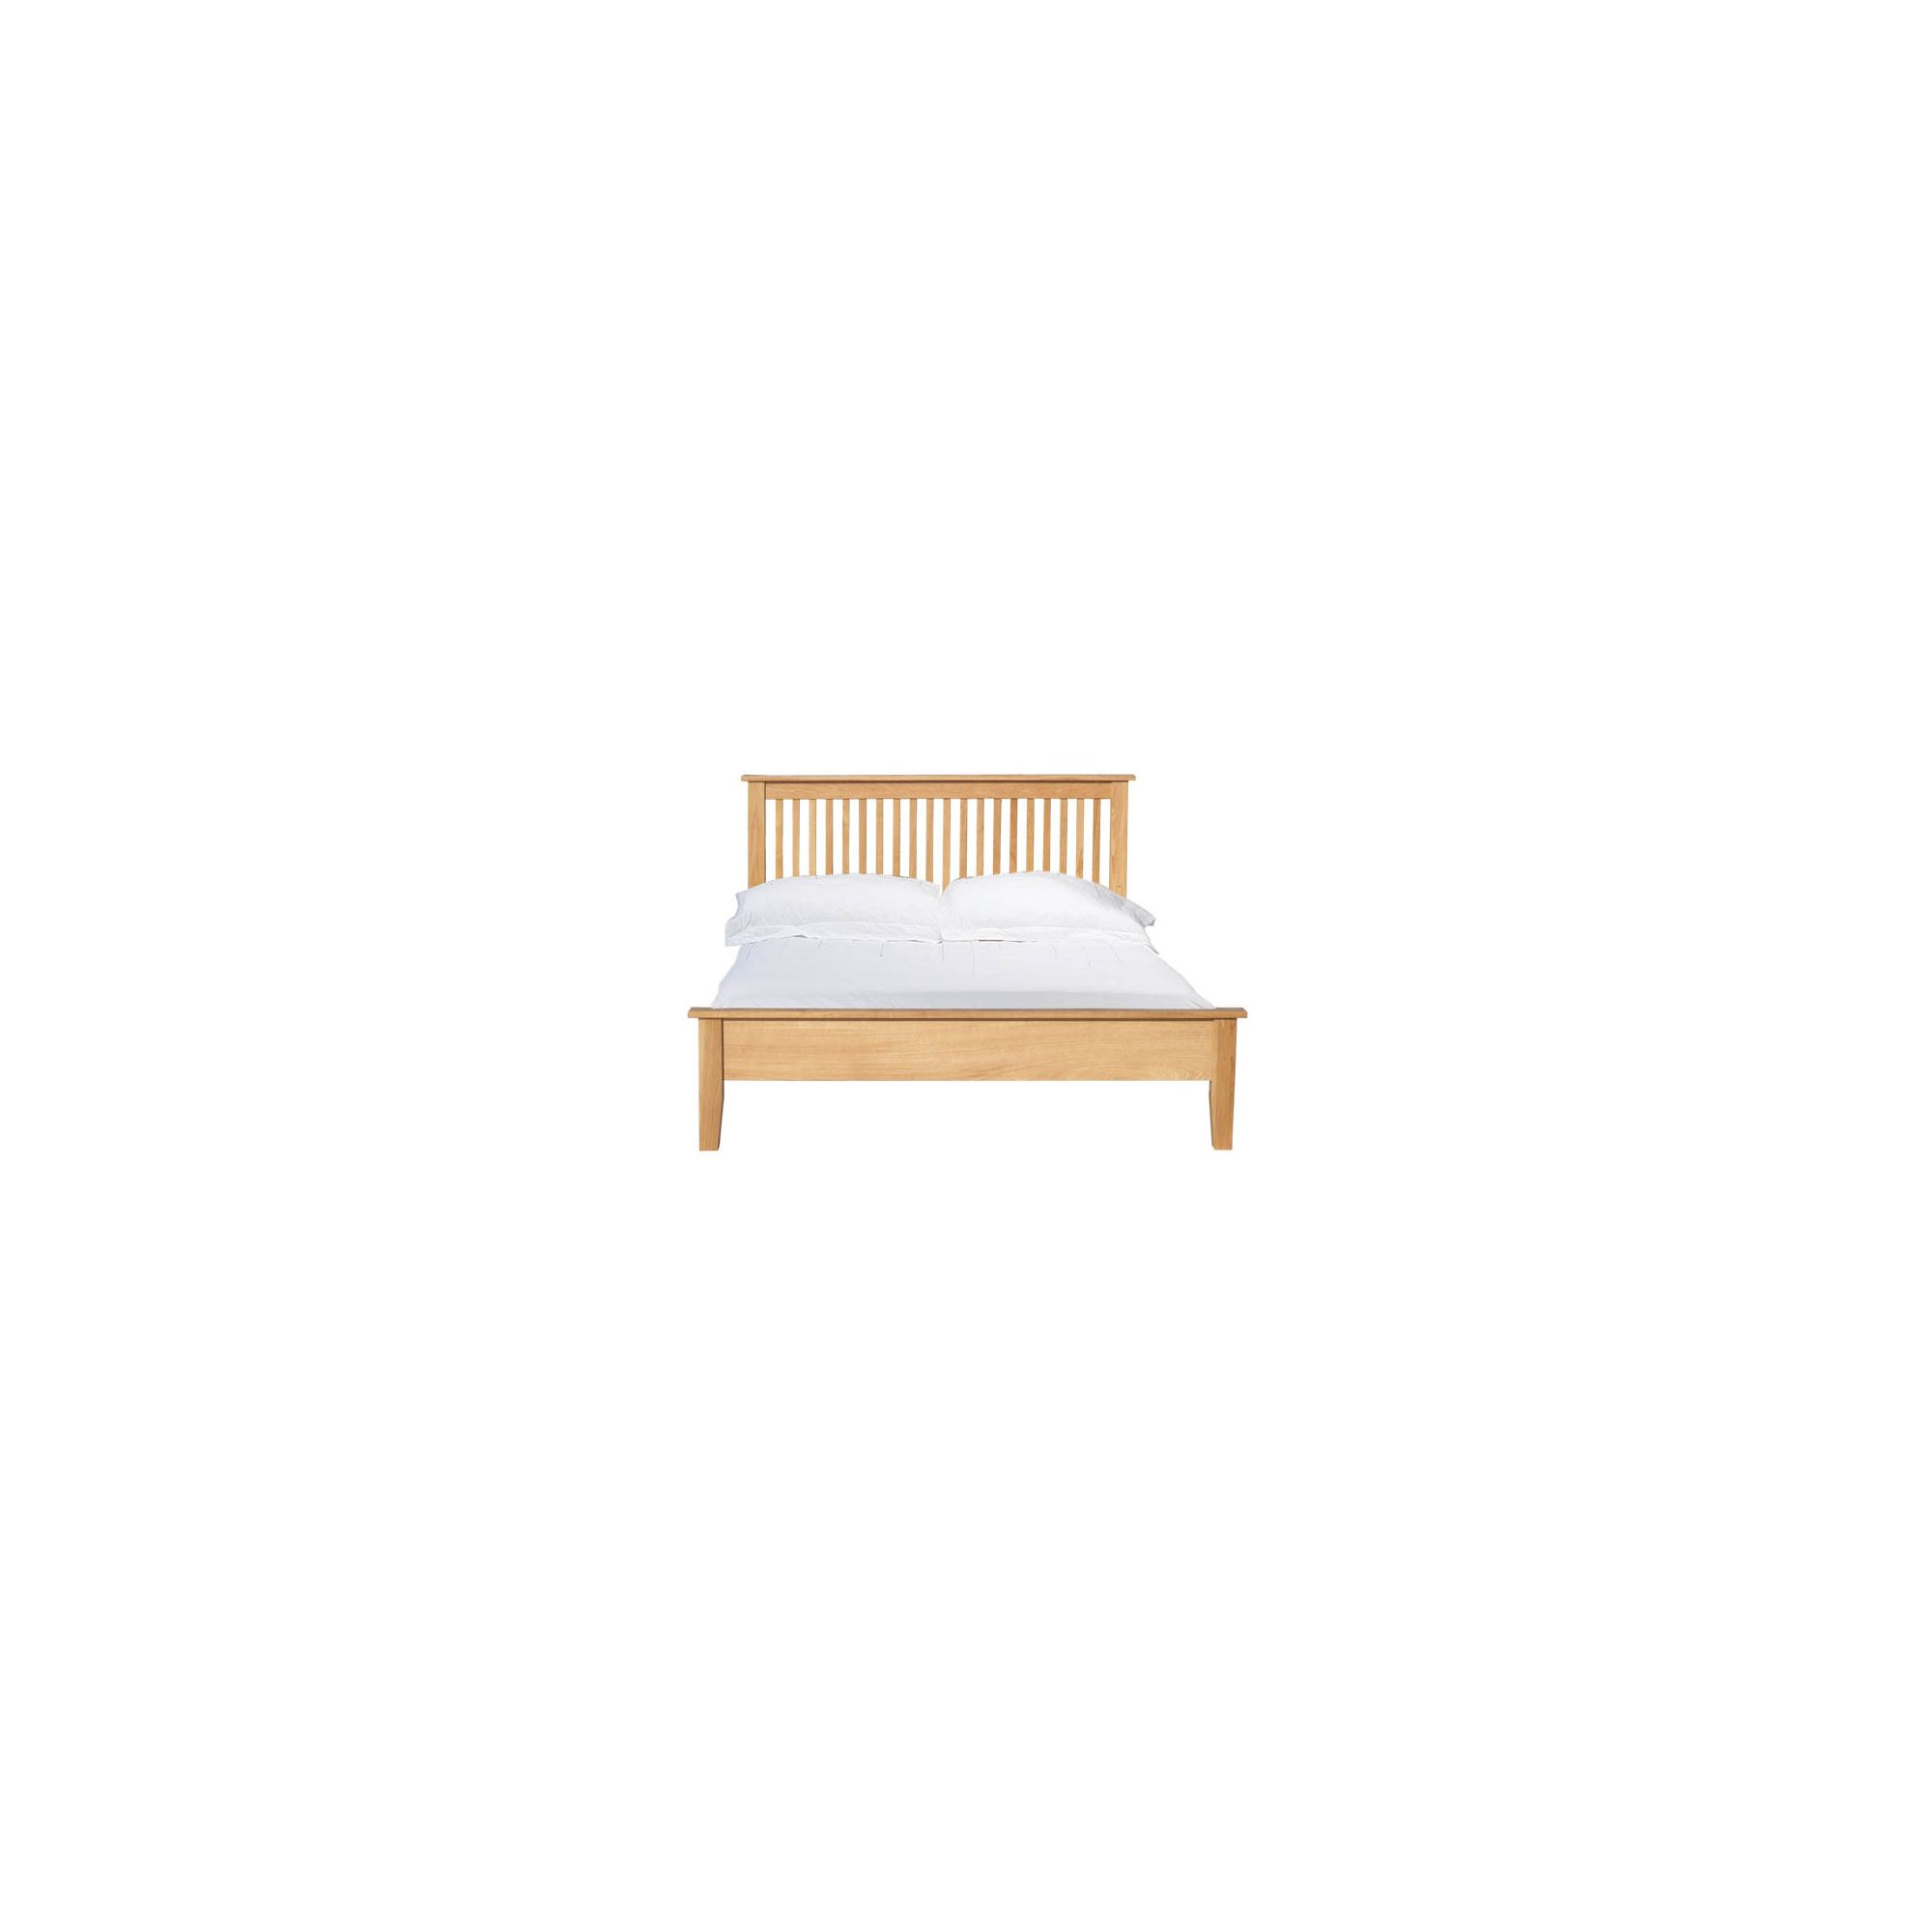 Home Zone Furniture Lincoln Bed Frame - Double at Tesco Direct